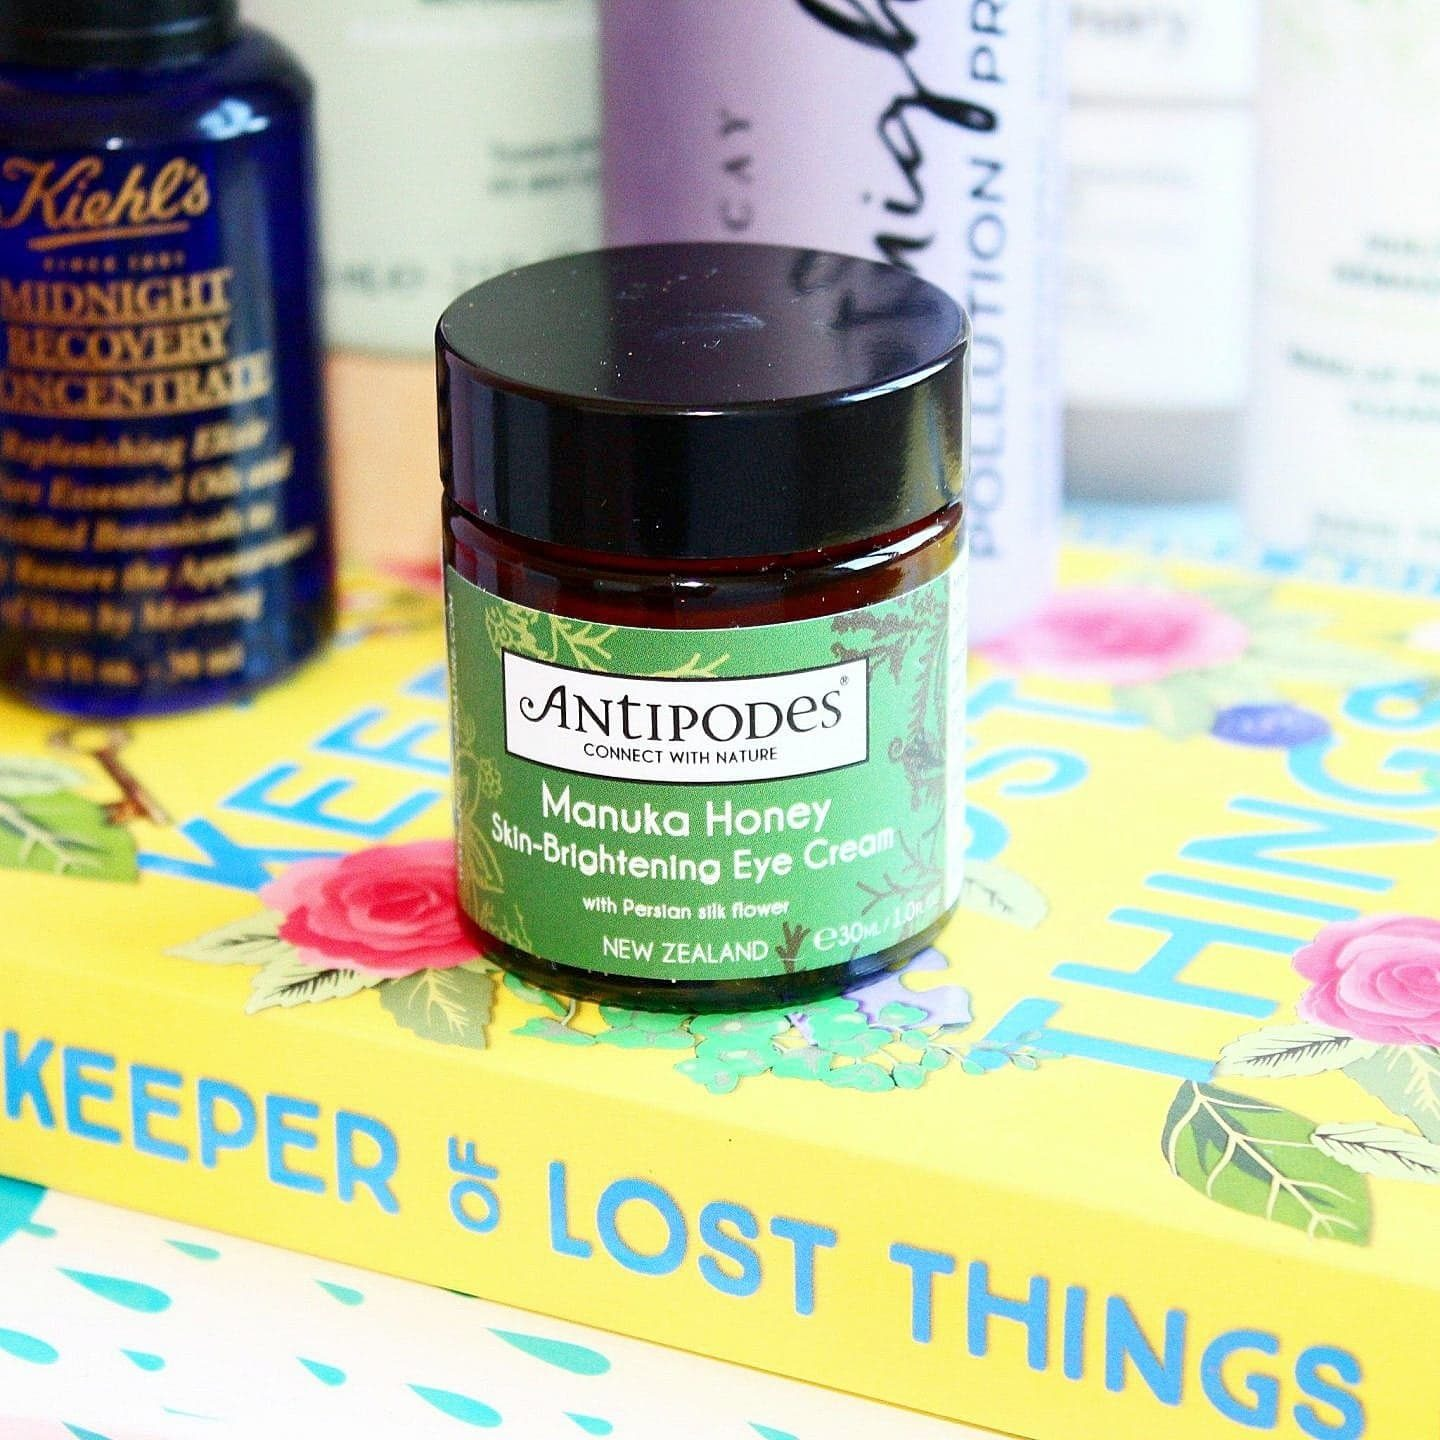 Antipodes Manuka Honey Skin Brightening Eye Cream